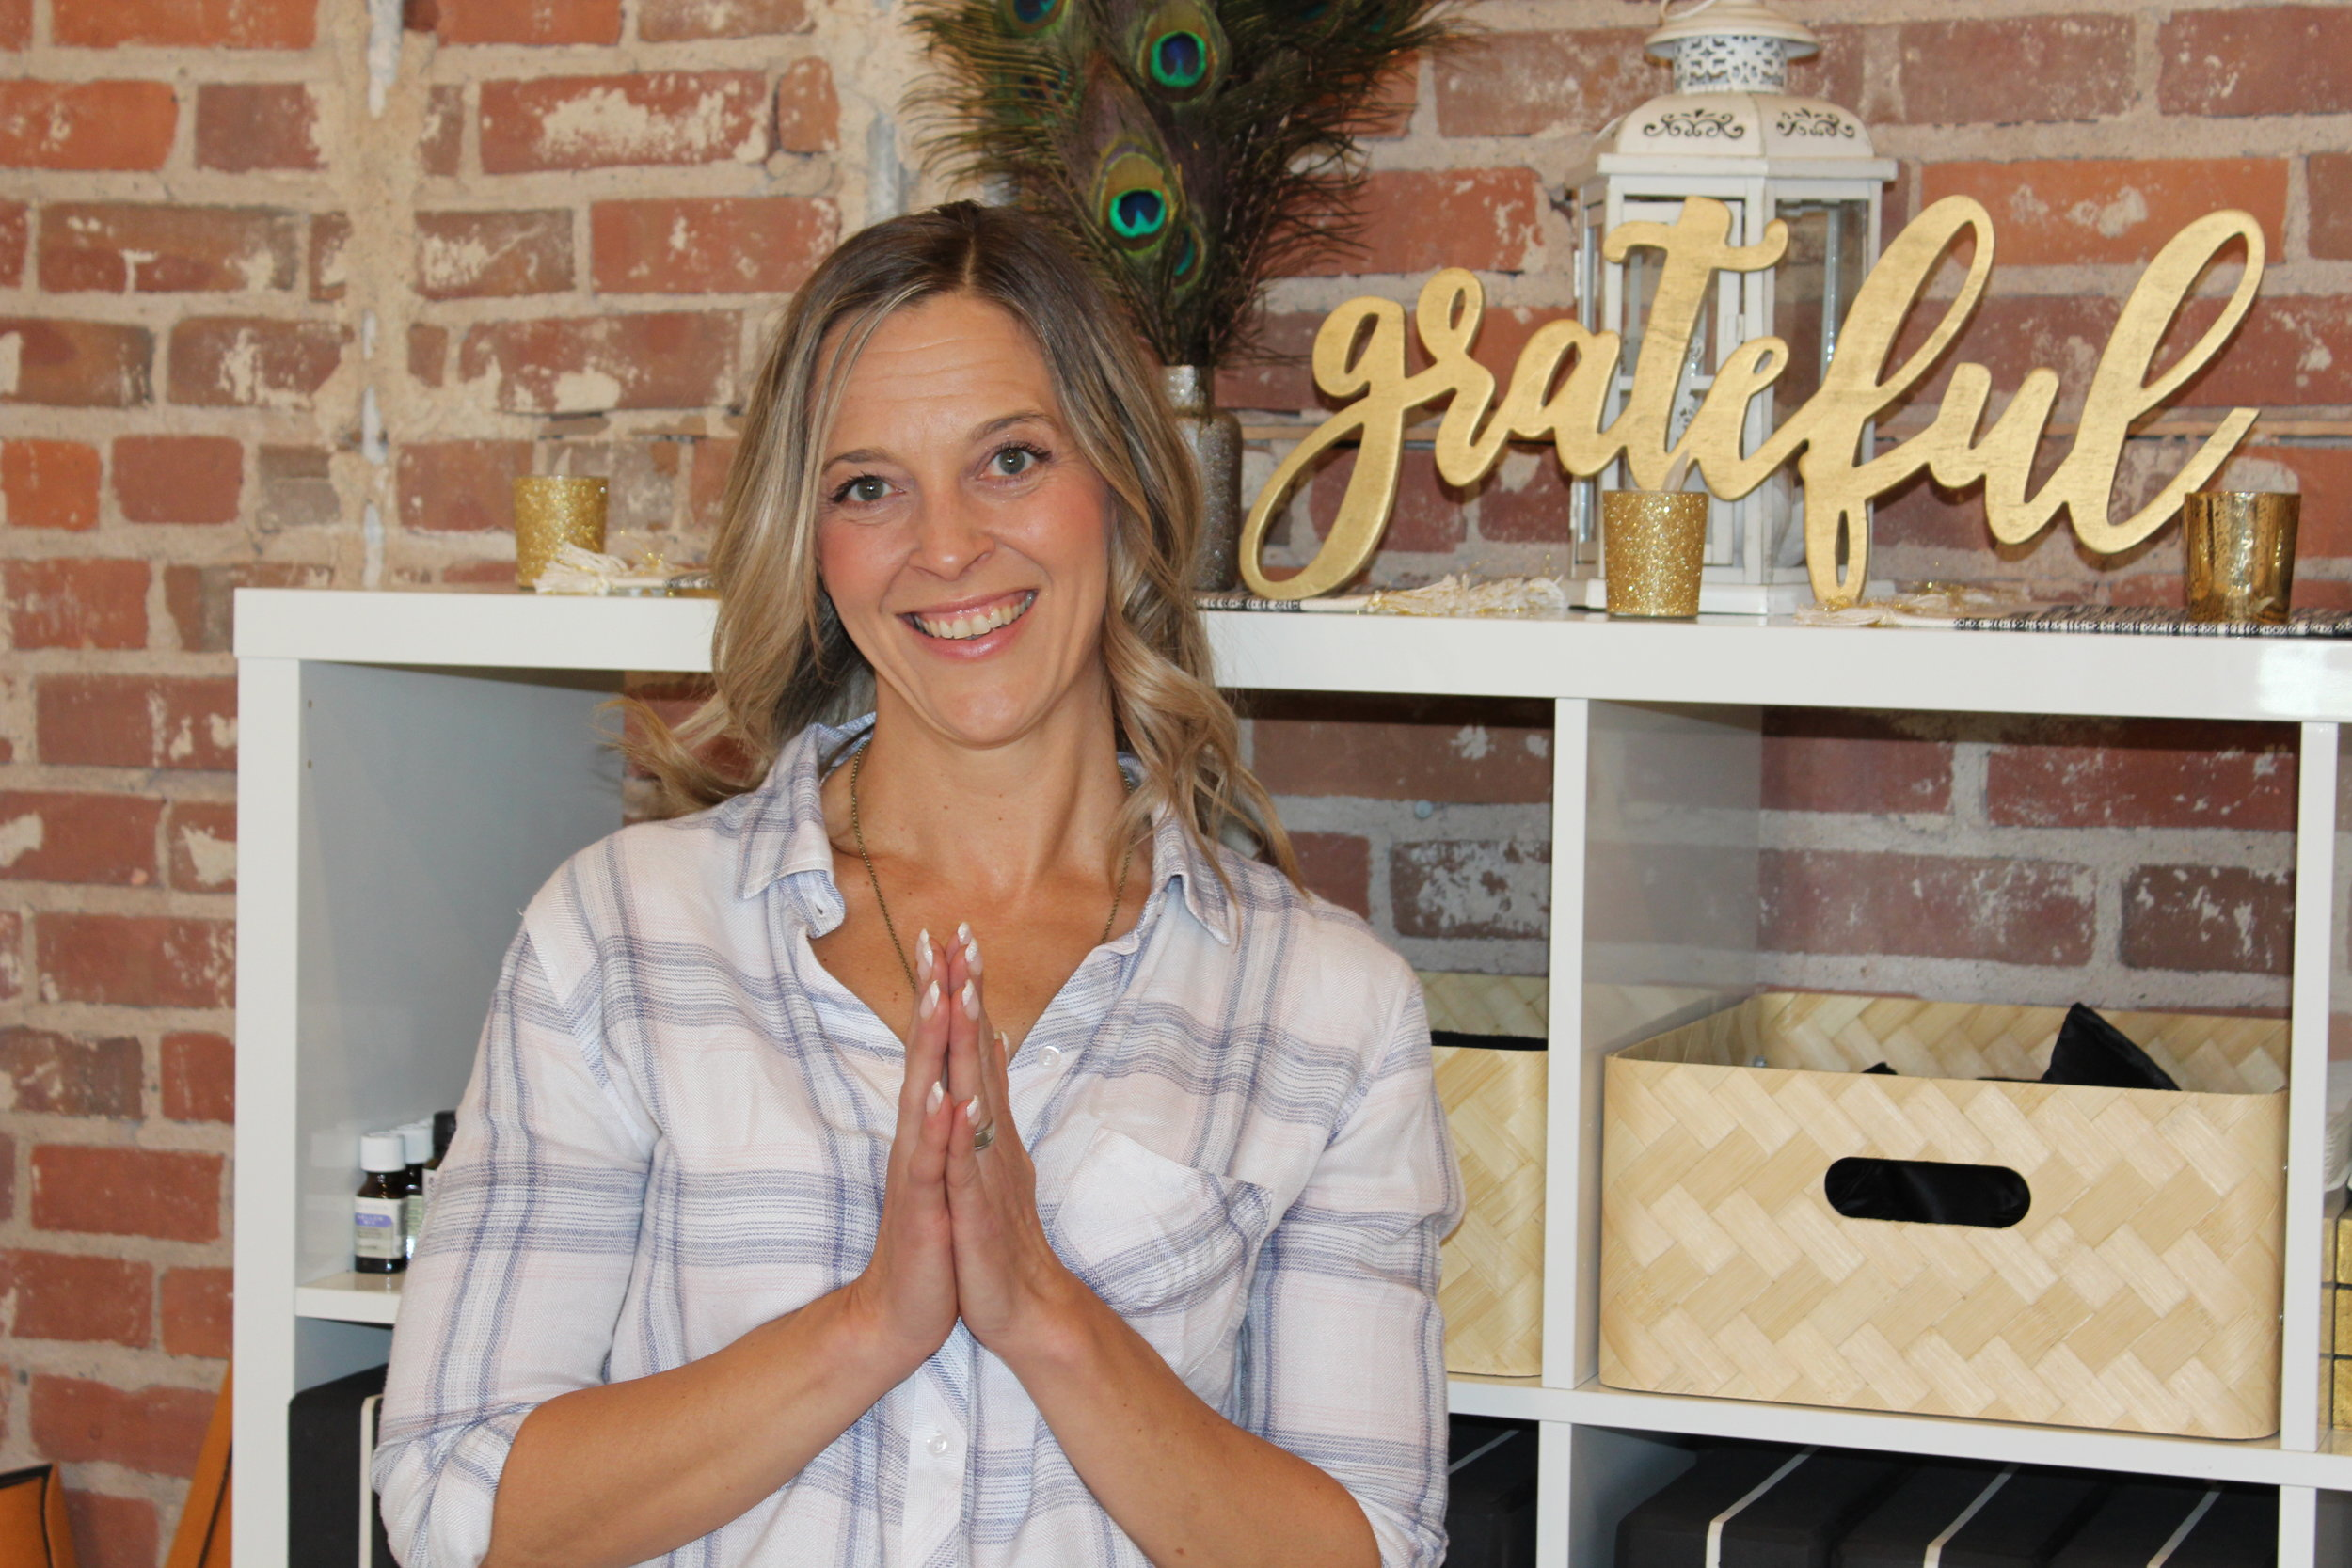 ee260dfda9860 Three years after launching her entrepreneurial vision, innovator Heather  Ritenour-Sampson has found a new home for her business, Yoga Tribe. After  growing ...